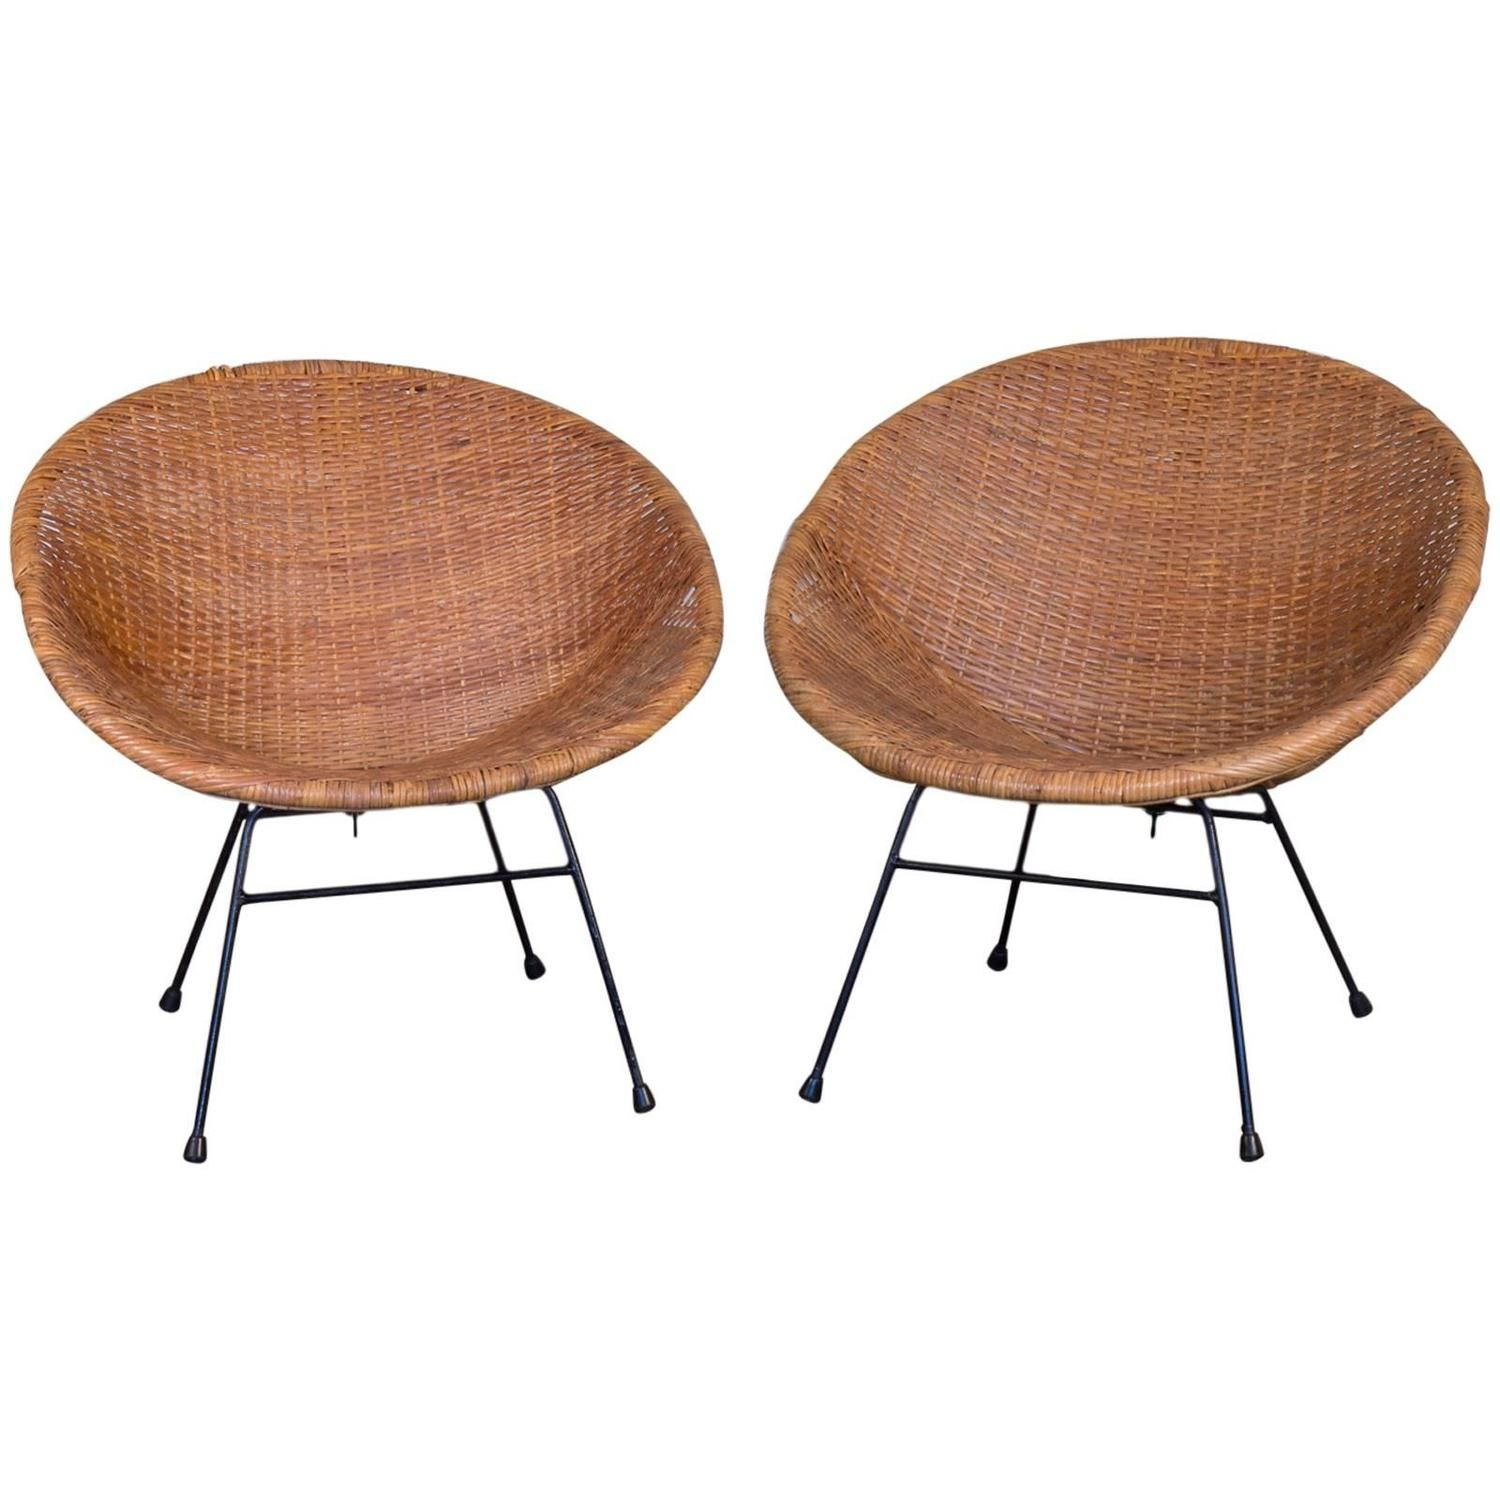 Astonishing Pair Of Mid Century Rattan Scoop Chairs Furniture Uwap Interior Chair Design Uwaporg